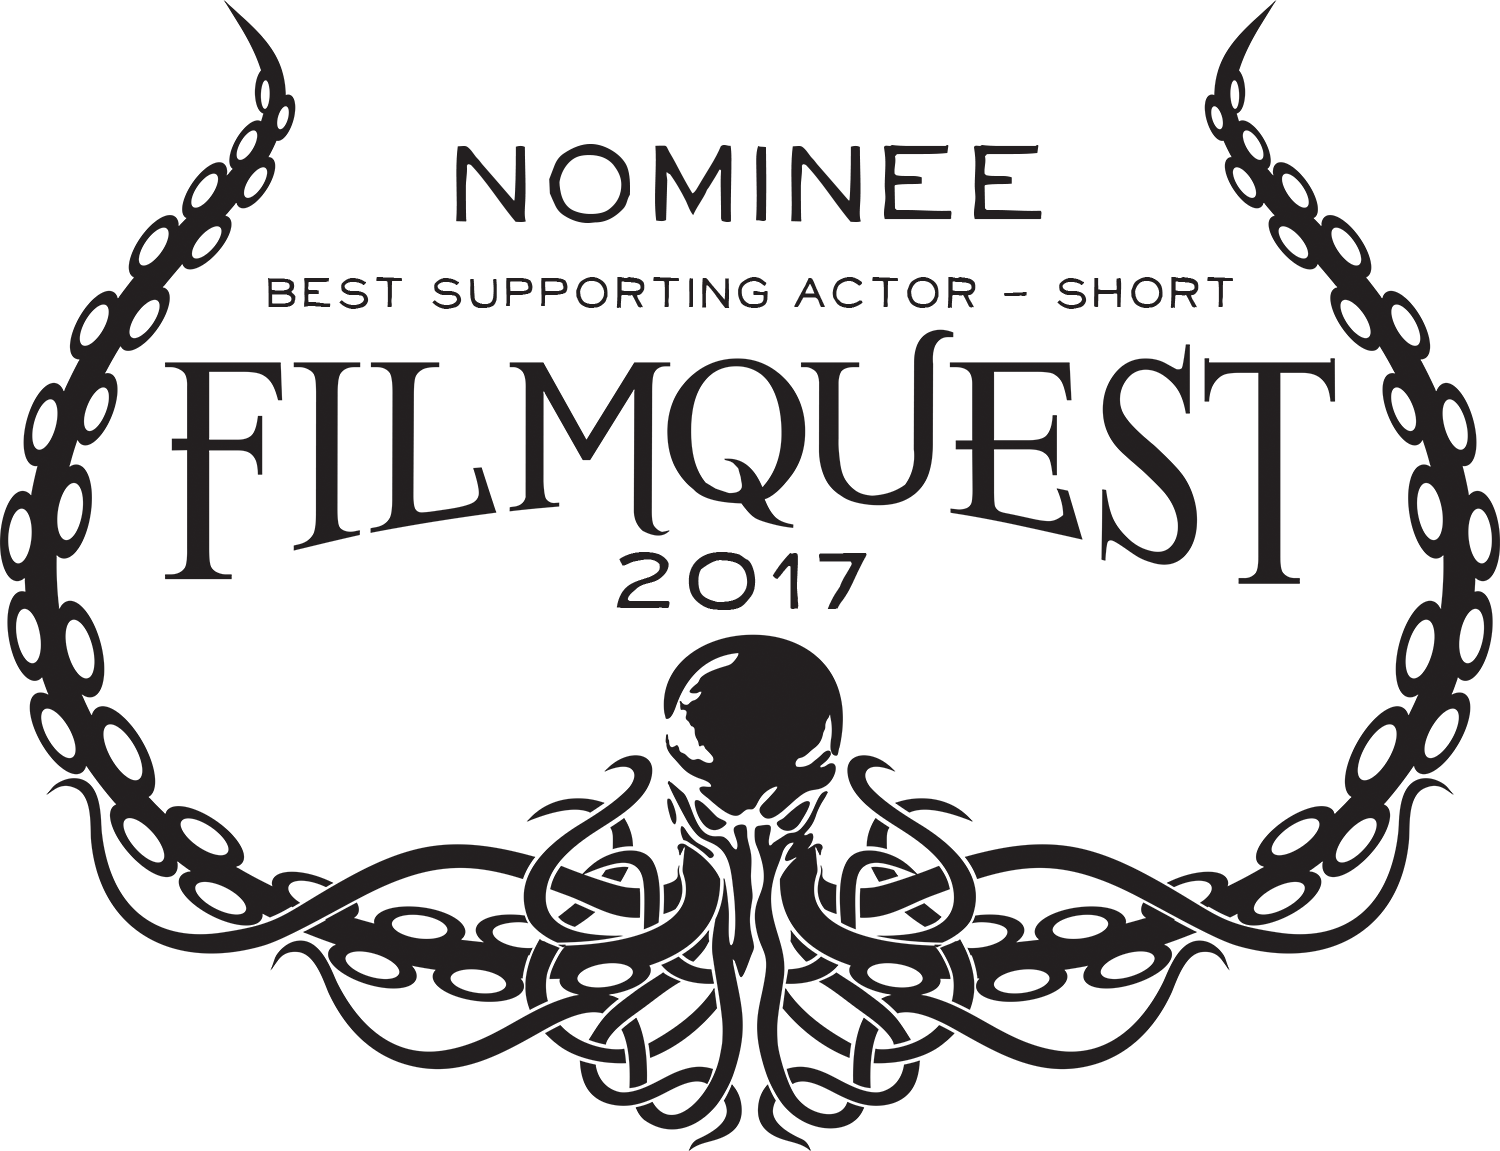 05 FilmQuest Nomination Best Supporting Actor.png